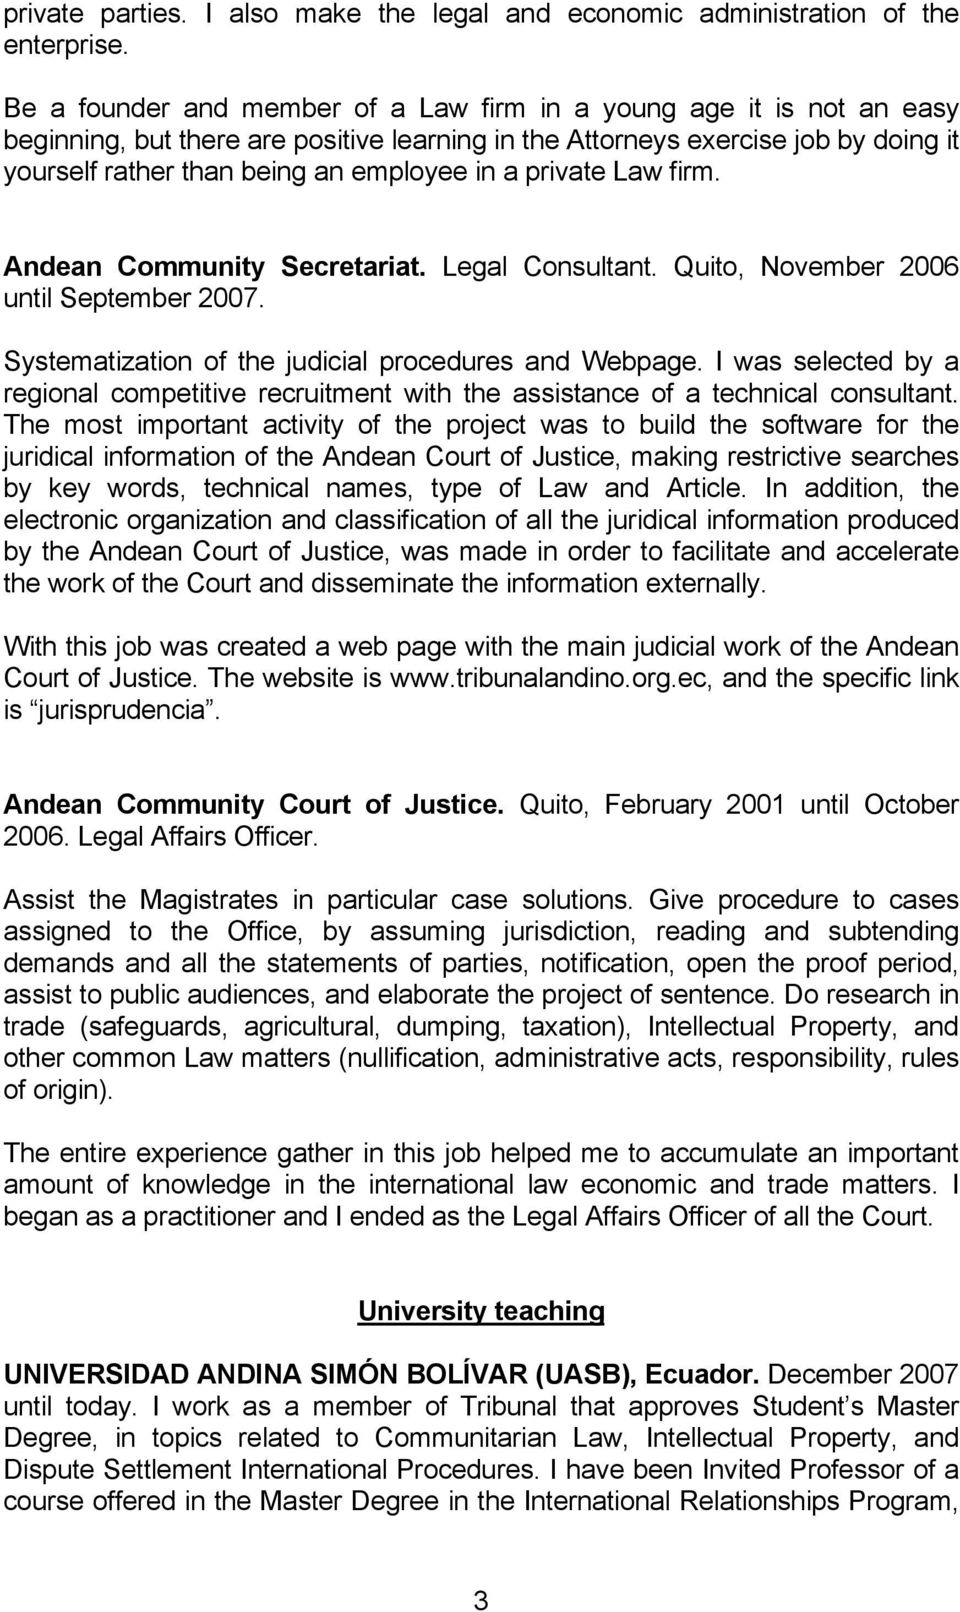 private Law firm. Andean Community Secretariat. Legal Consultant. Quito, November 2006 until September 2007. Systematization of the judicial procedures and Webpage.